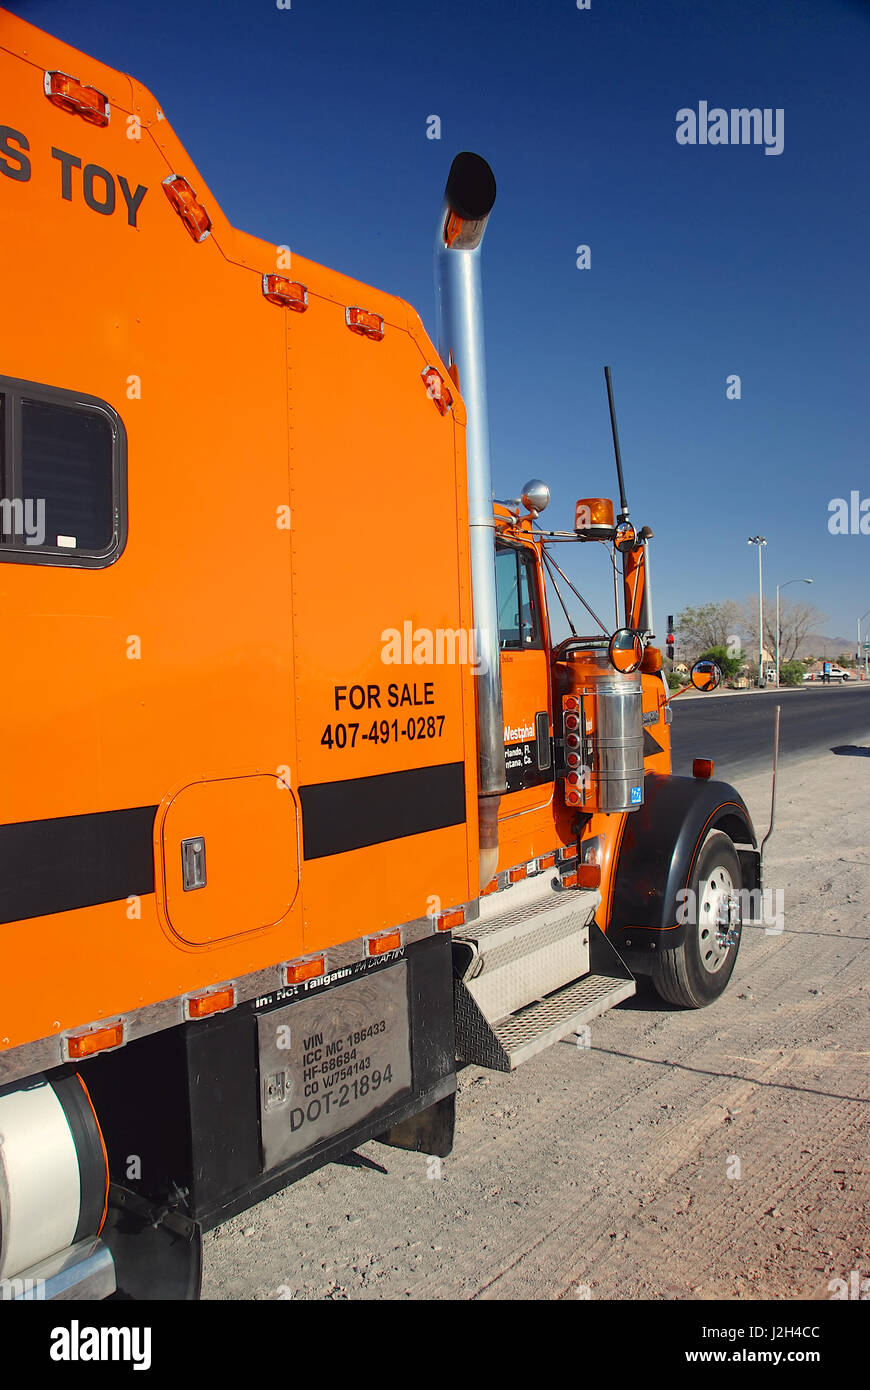 Orange Kenworth Truck parked by the side of the highway in Nevada, USA - Stock Image